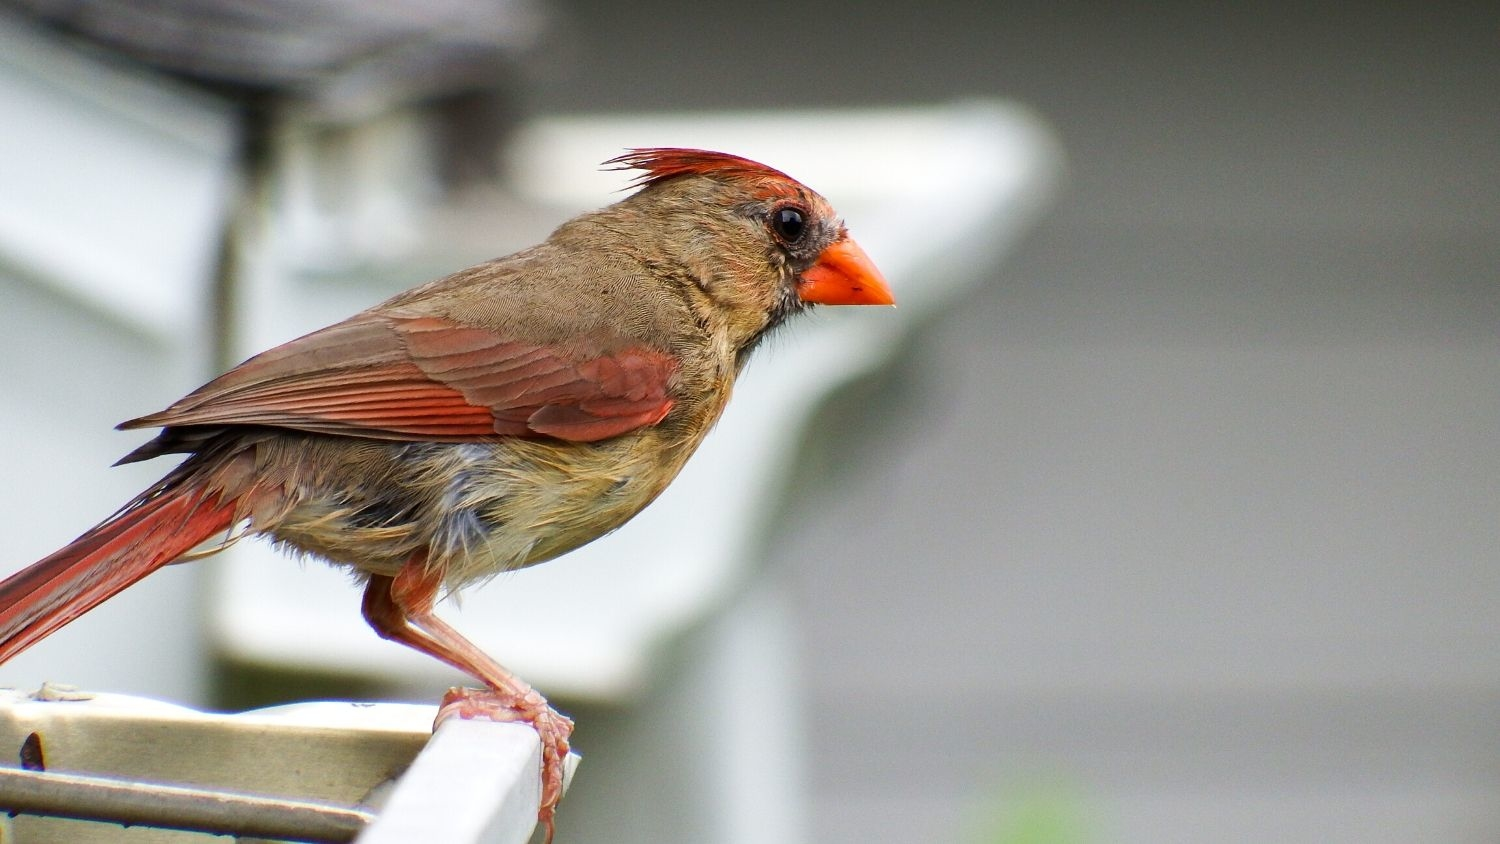 Cardinal - 5 Tips for Getting into Birding - Forestry and Environmental Resources NC State University